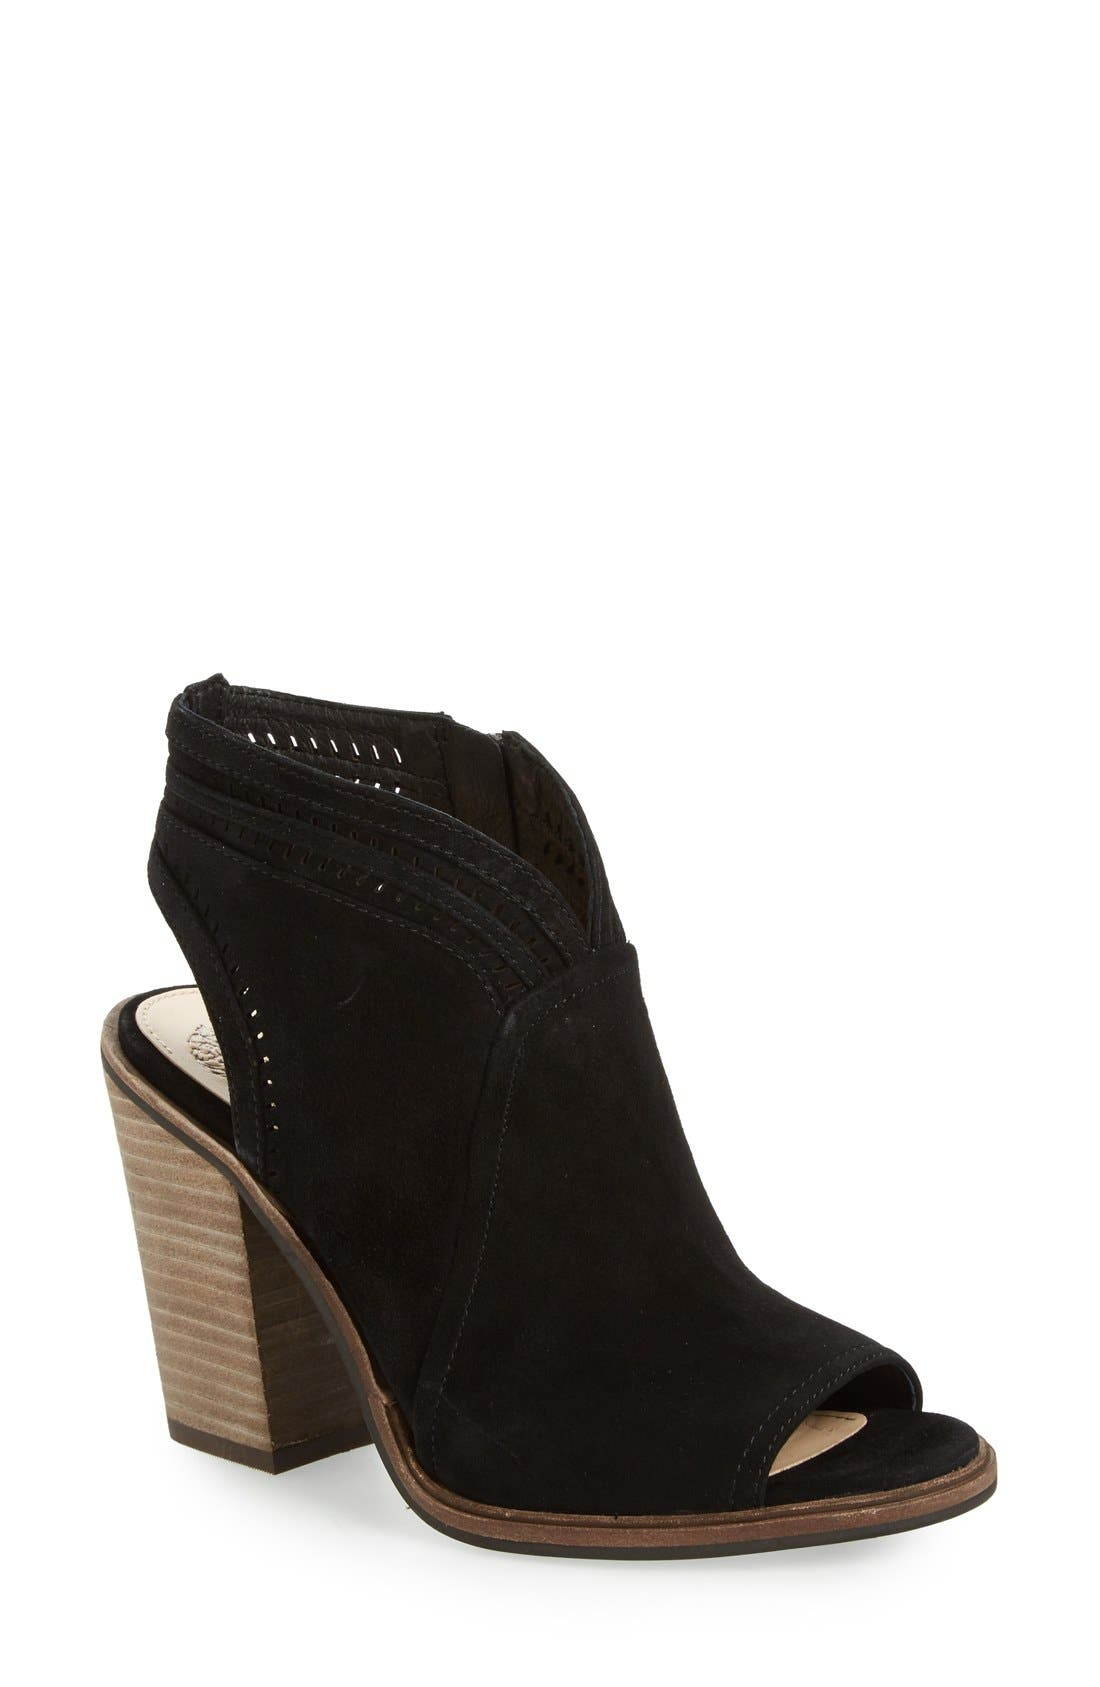 'Koral' Perforated Open Toe Bootie,                             Main thumbnail 1, color,                             001